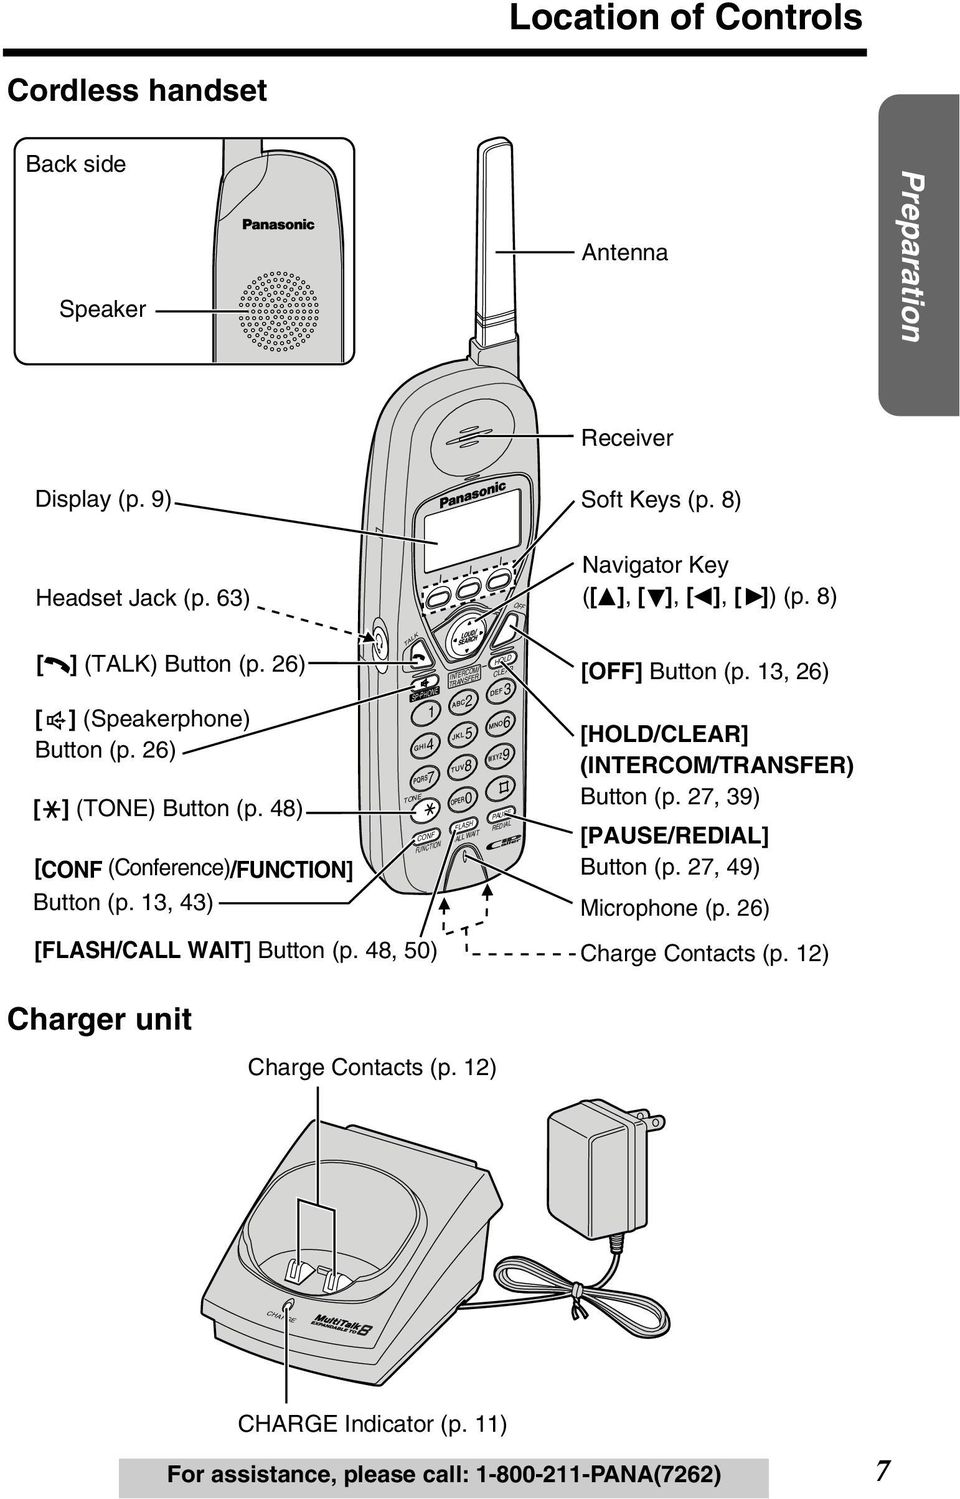 13, 43) TALK SP-PHONE [FLASH/CALL WAIT] Button (p. 48, 50) TONE INTERCOM TRANSFER CLEAR 3 1 2 4 5 6 7 8 0 FLASH CALL WAIT HOLD 9 CONF PAUSE FUNCTION REDIAL [OFF] Button (p.